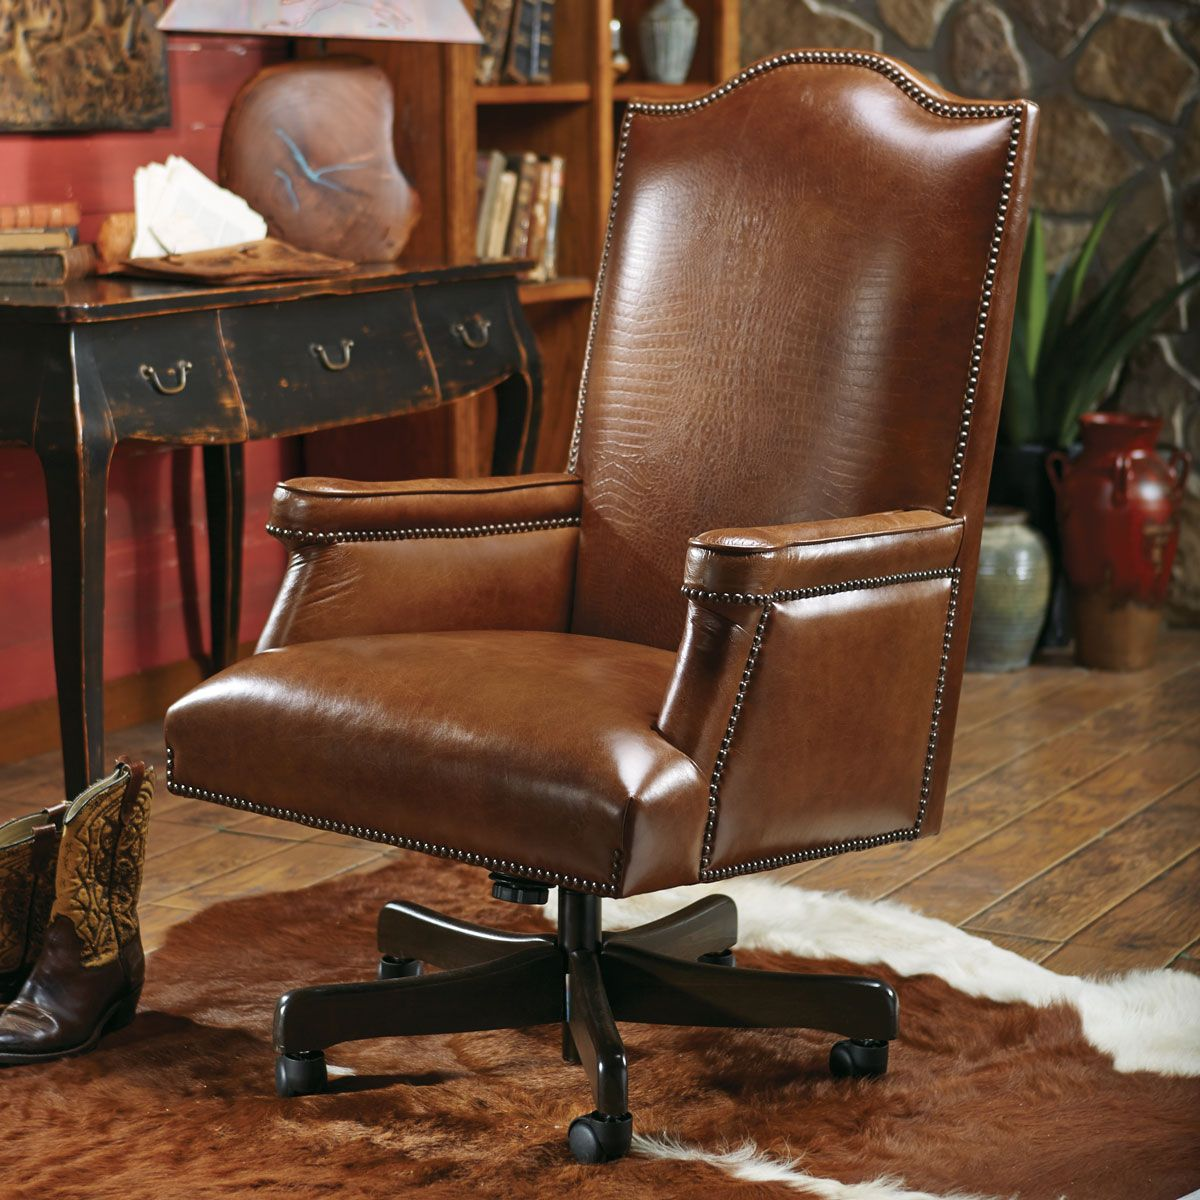 Baron Executive Chair with Croc Leather